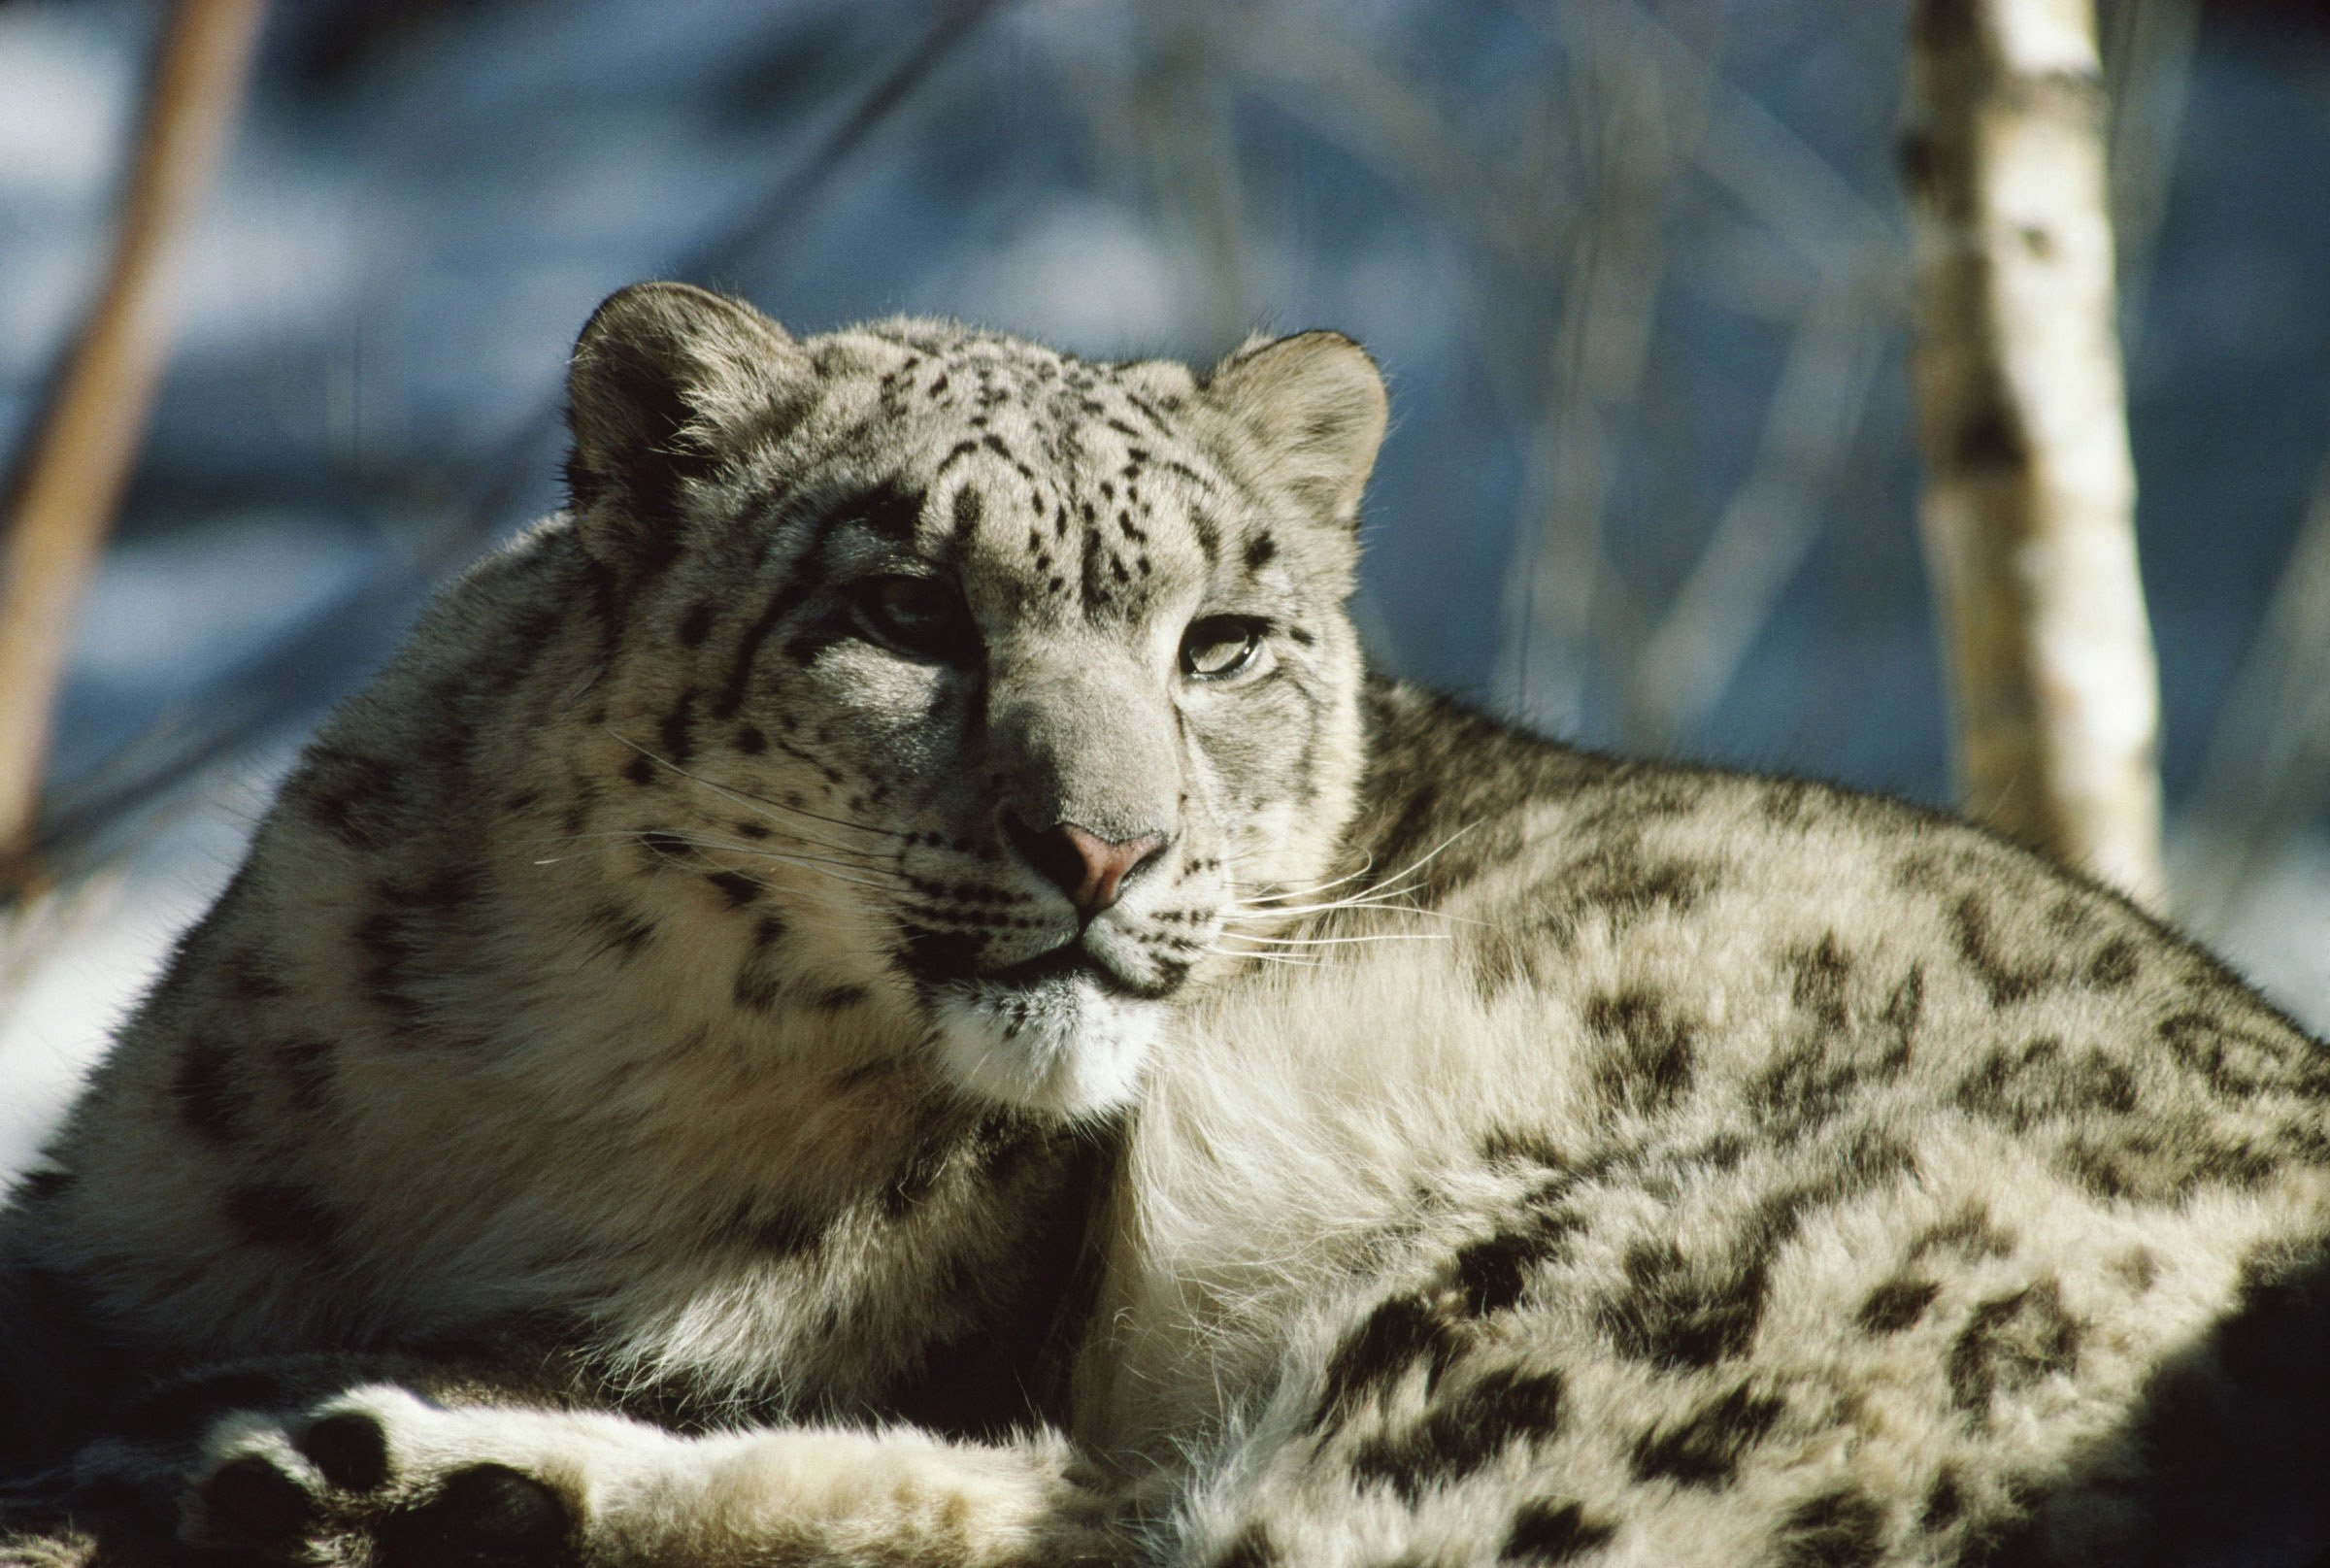 Snow leopard sitting down